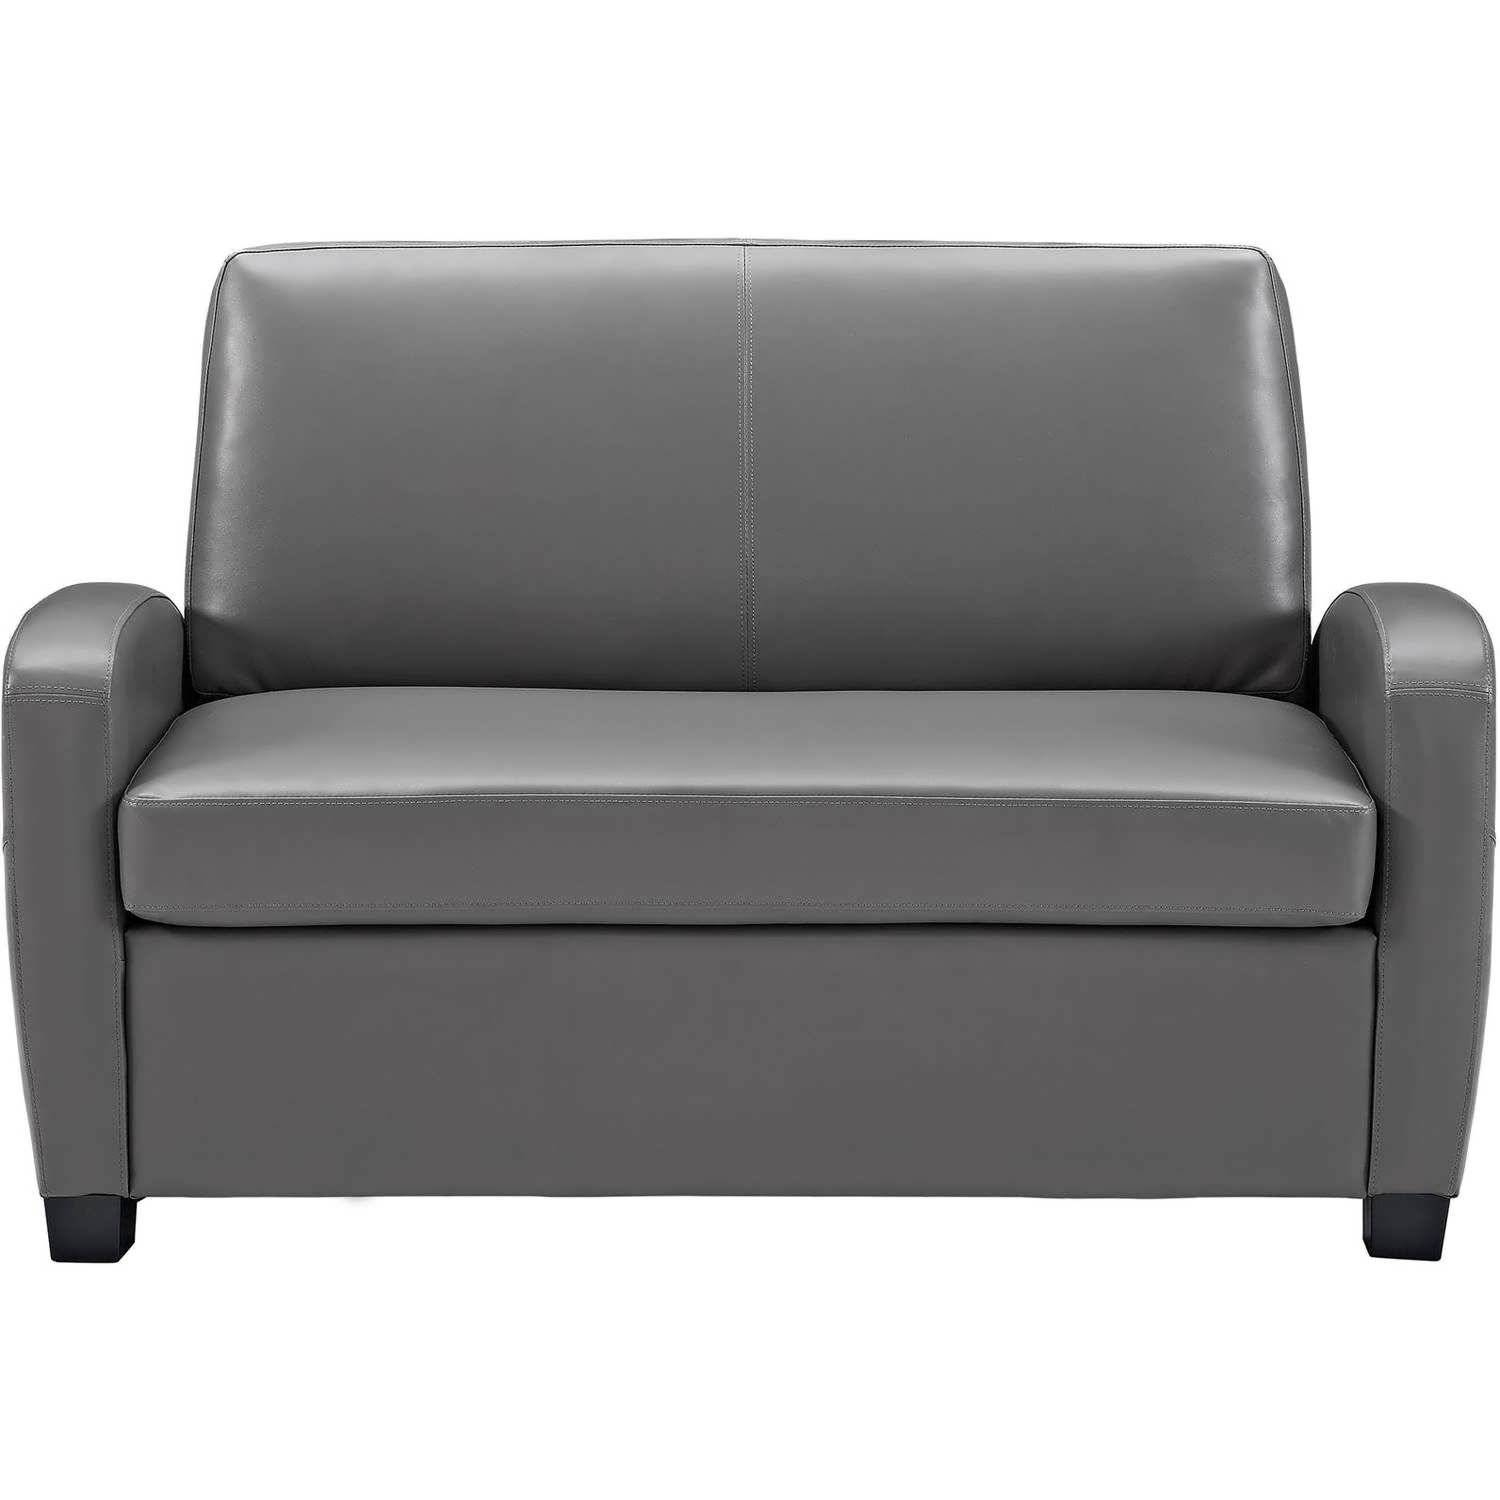 Delightful Sofa : Narrow Depth Couches Where To Buy Sofa Small Sofa Set For Within Narrow  Depth